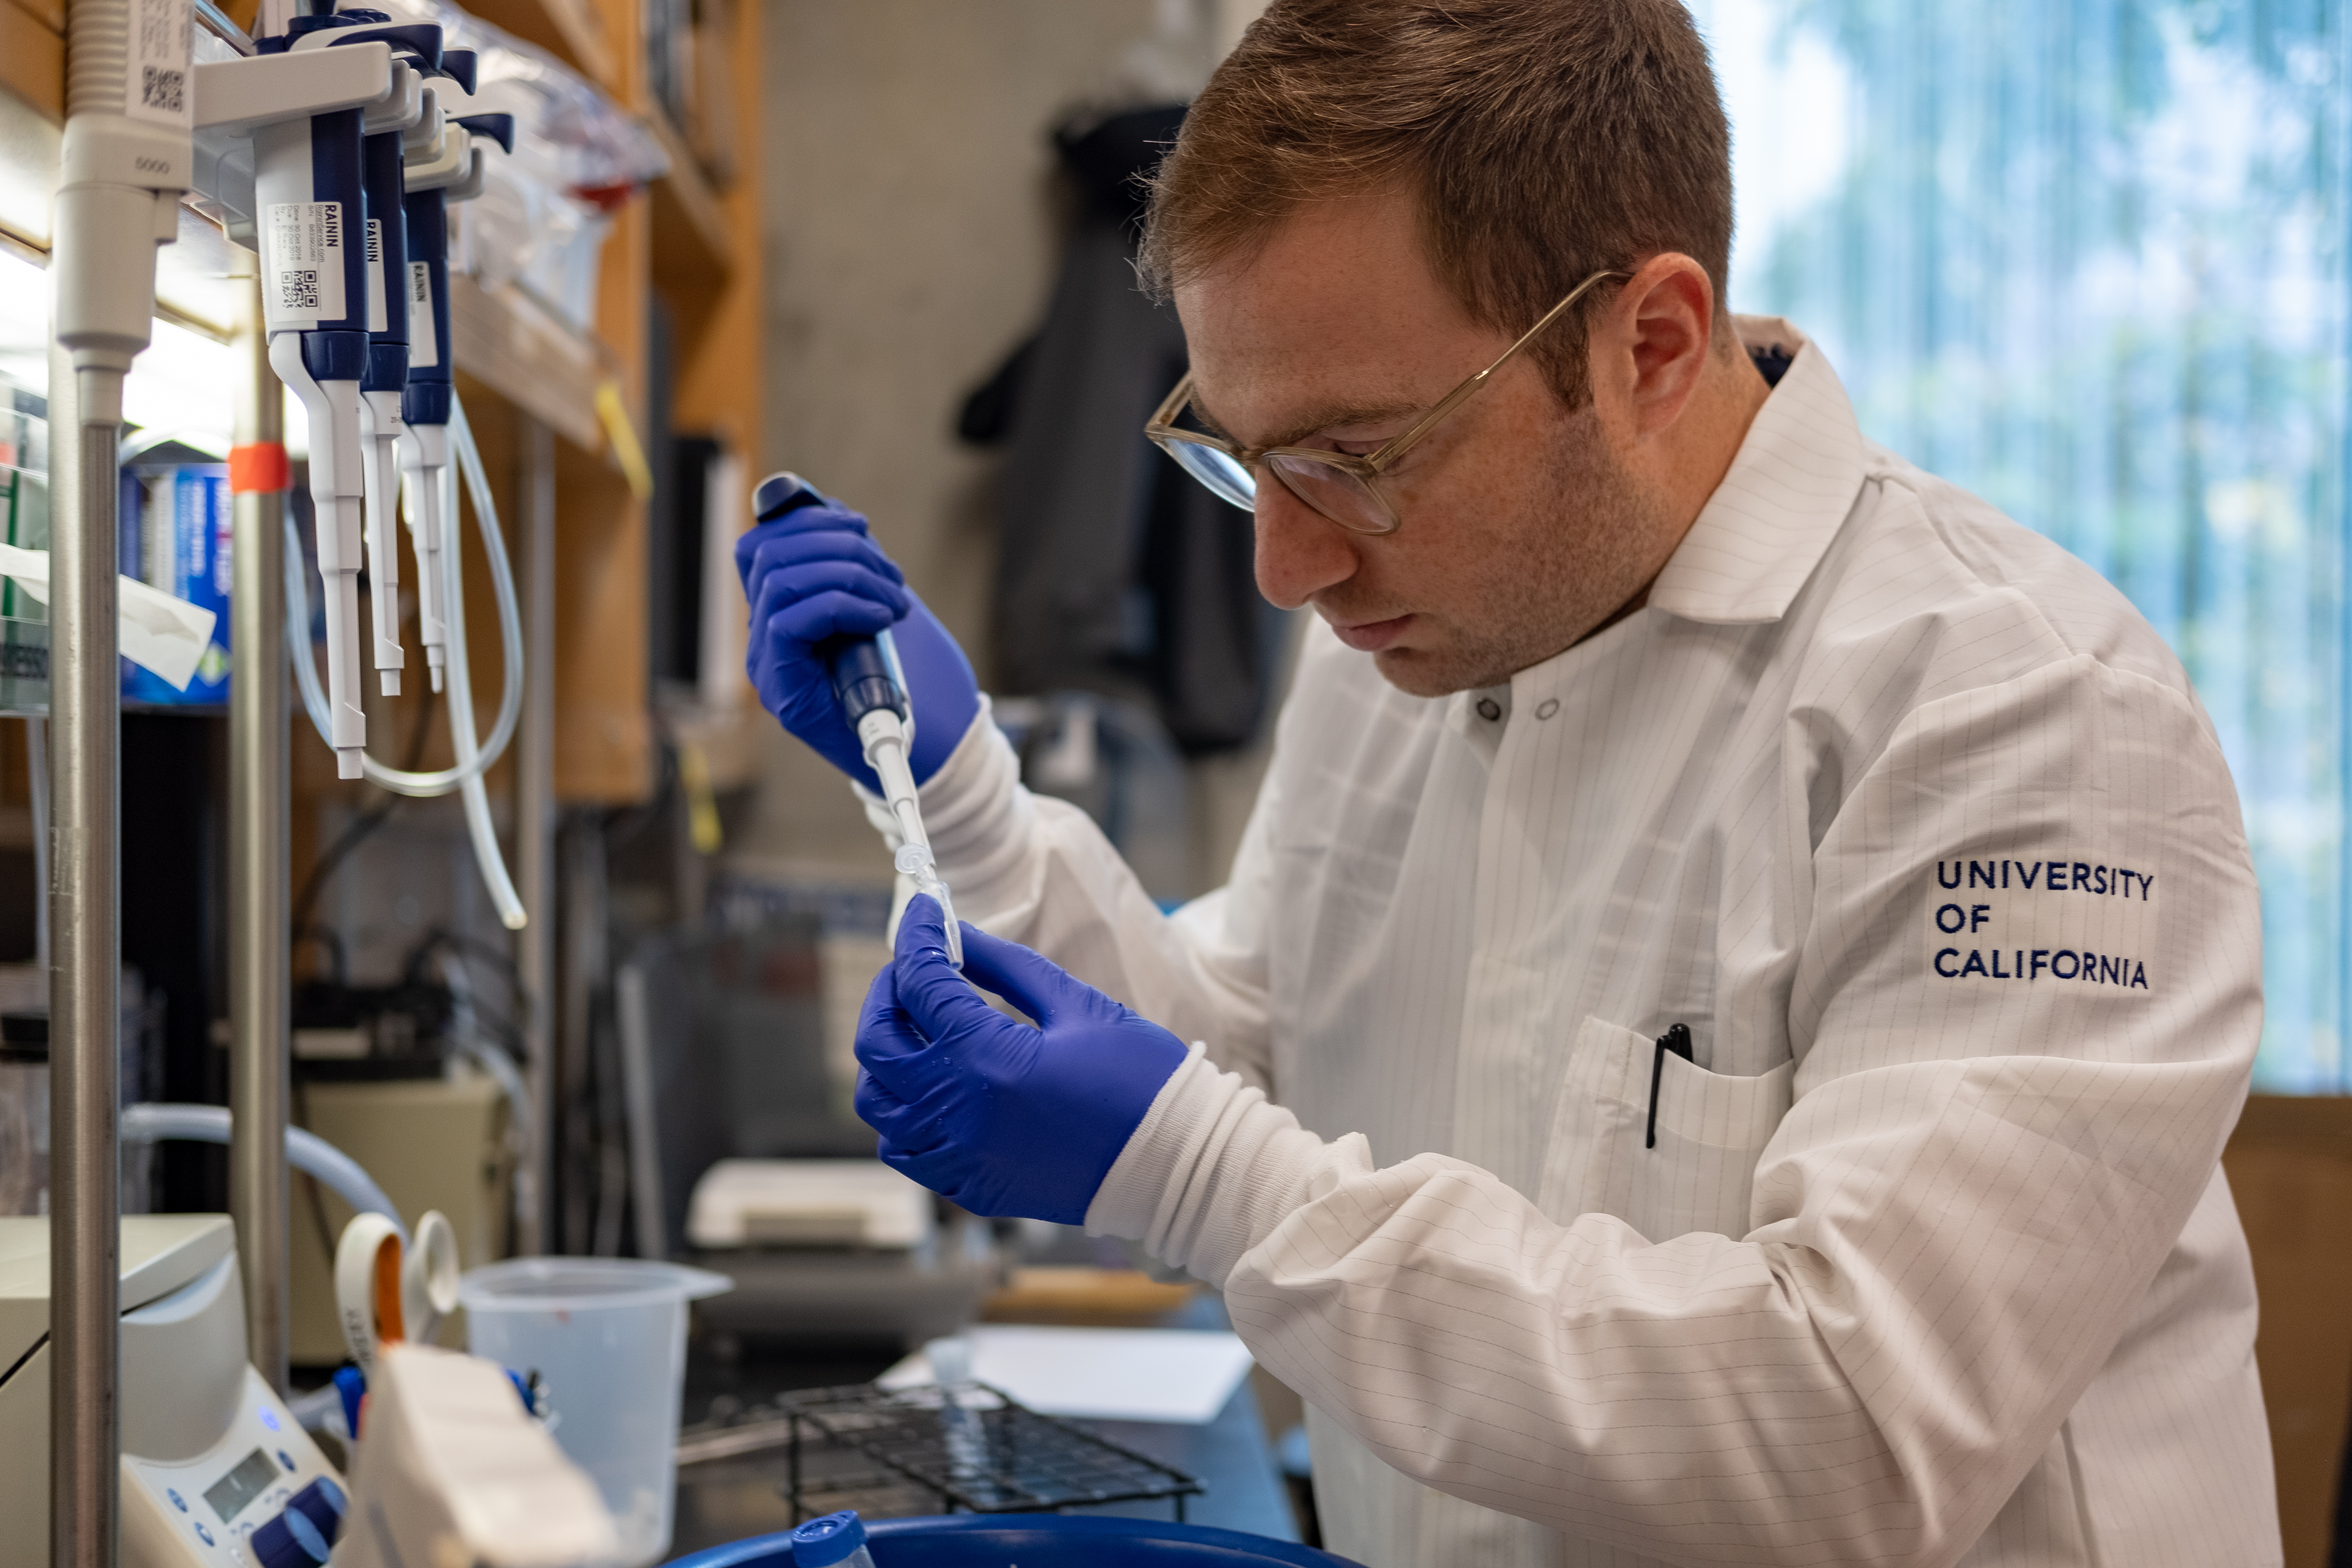 Man wearing lab gloves and a lab coat using a pipette